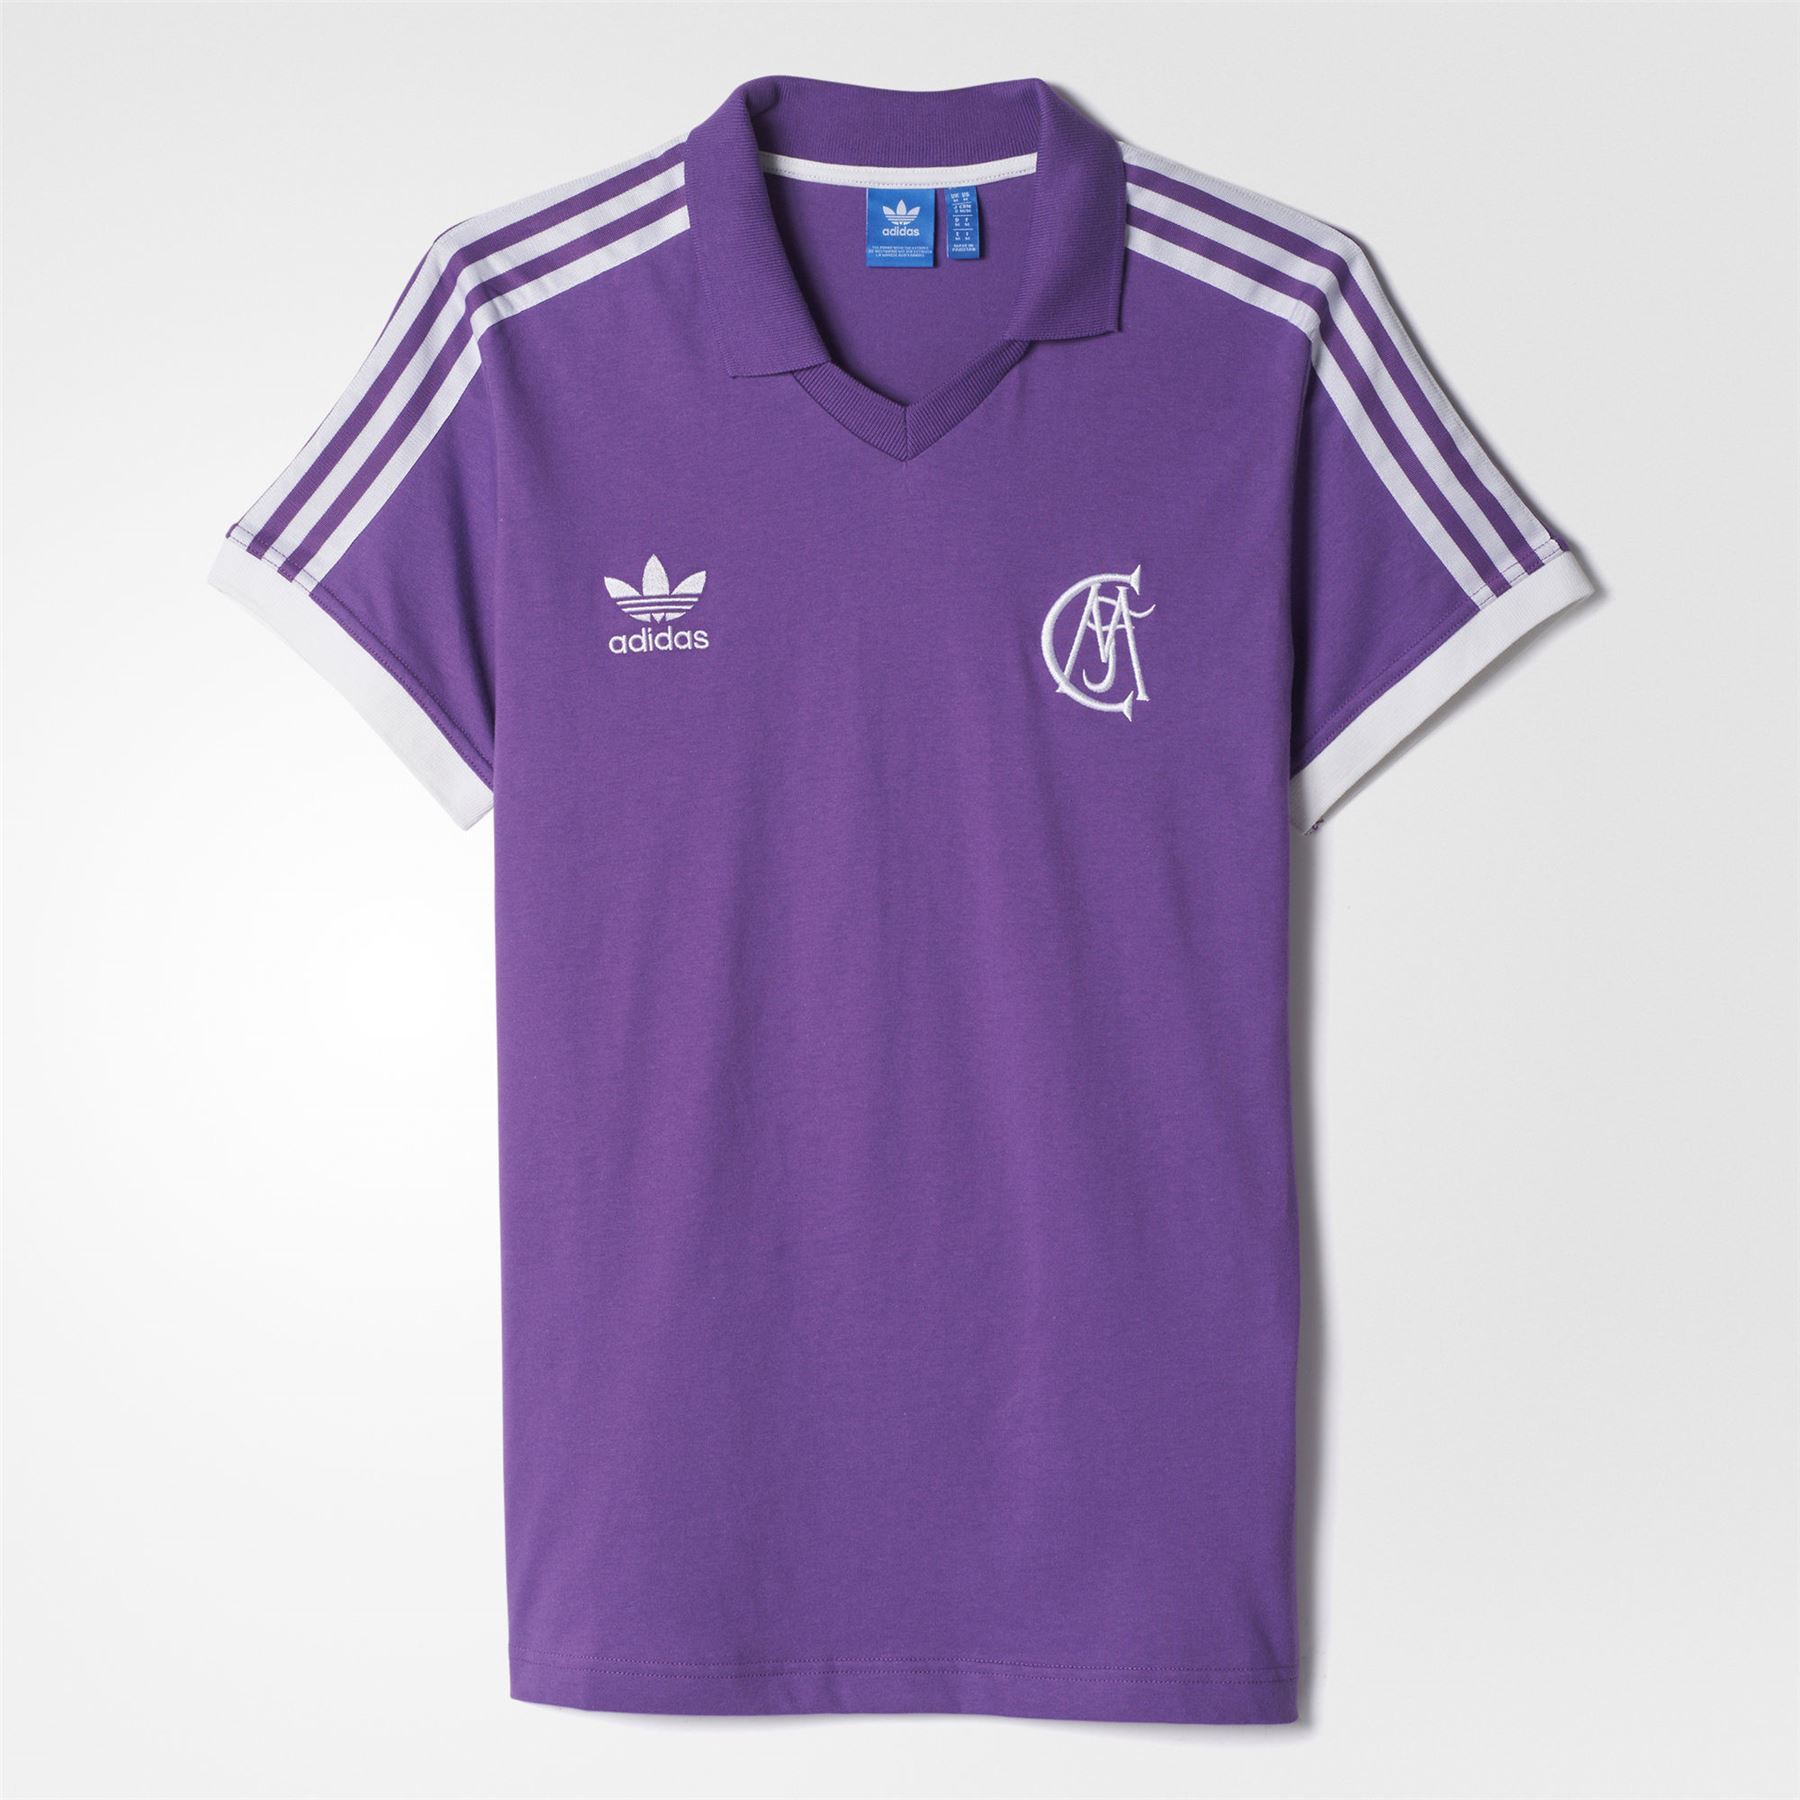 Details about adidas ORIGINALS RETRO FOOTBALL SHIRTS VINTAGE MEN'S GERMANY SPAIN FRANCE NEW